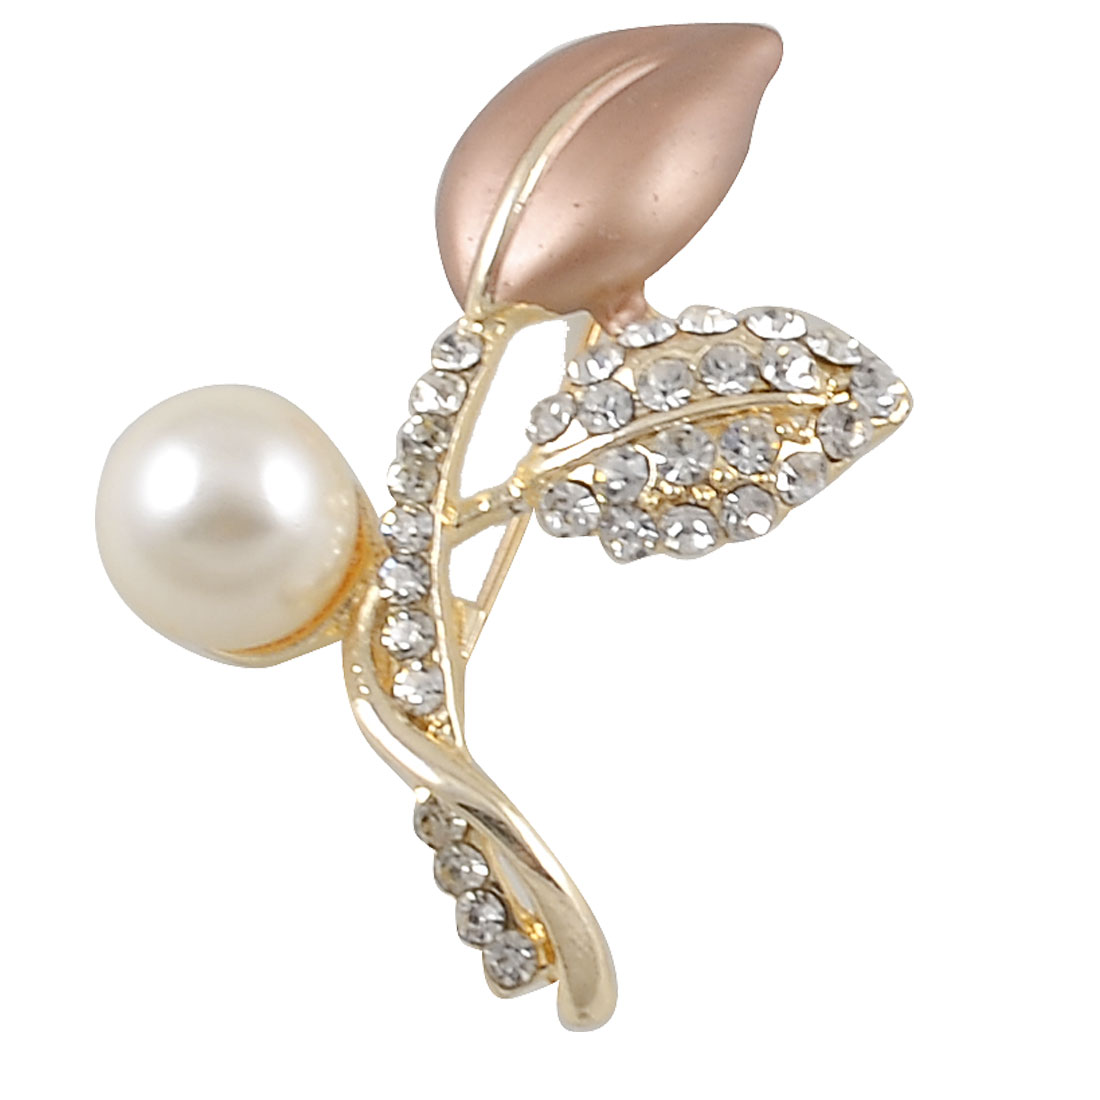 Gold Tone Rosy Brown Leaf Faux Pearl Detailing Safety Pin Brooch Gift for Women